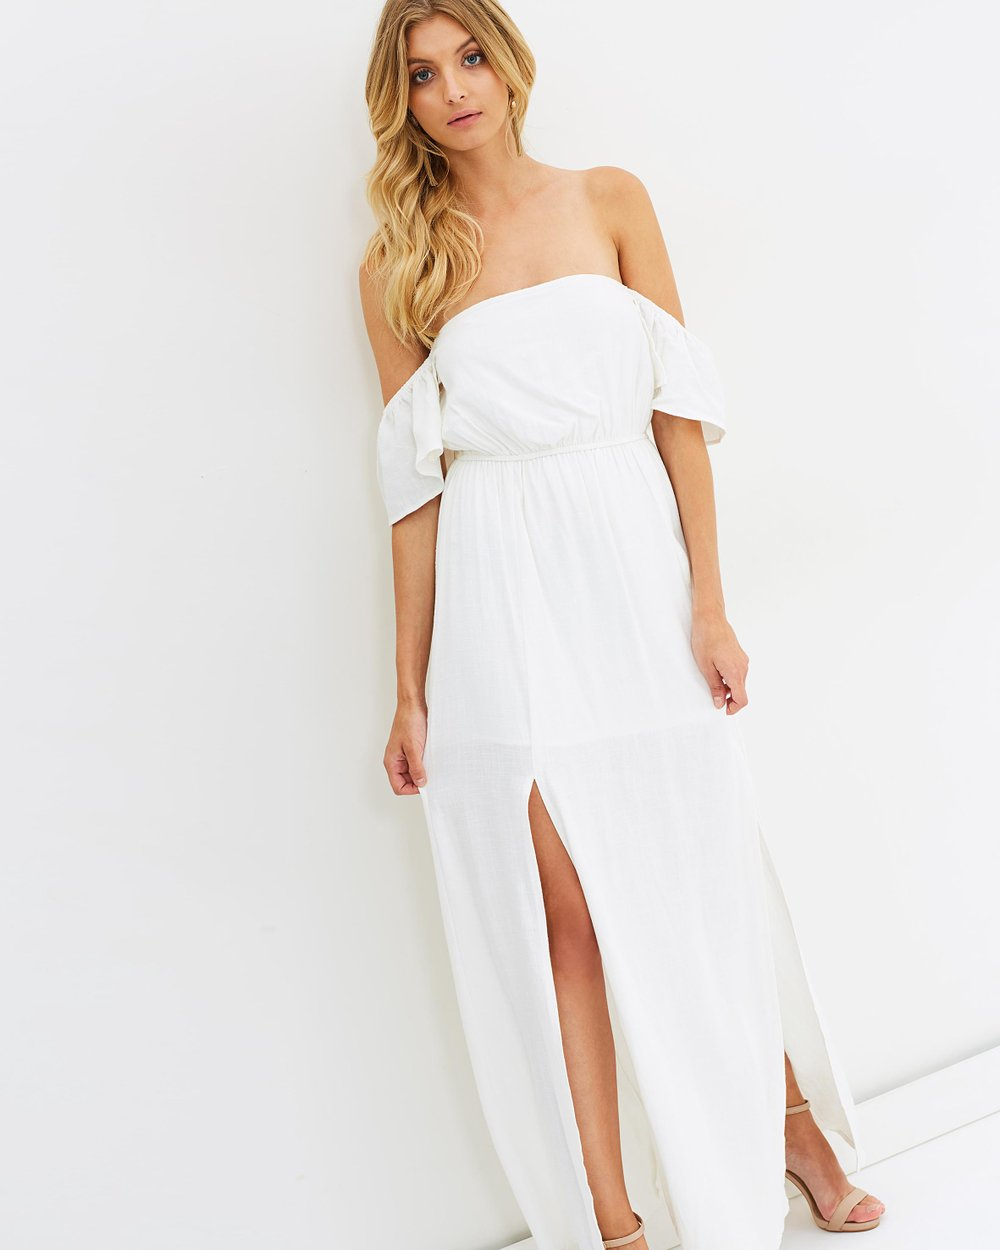 806450664eee ICONIC EXCLUSIVE - Dhalia Off-Shoulder Maxi Dress by Atmos Here Online